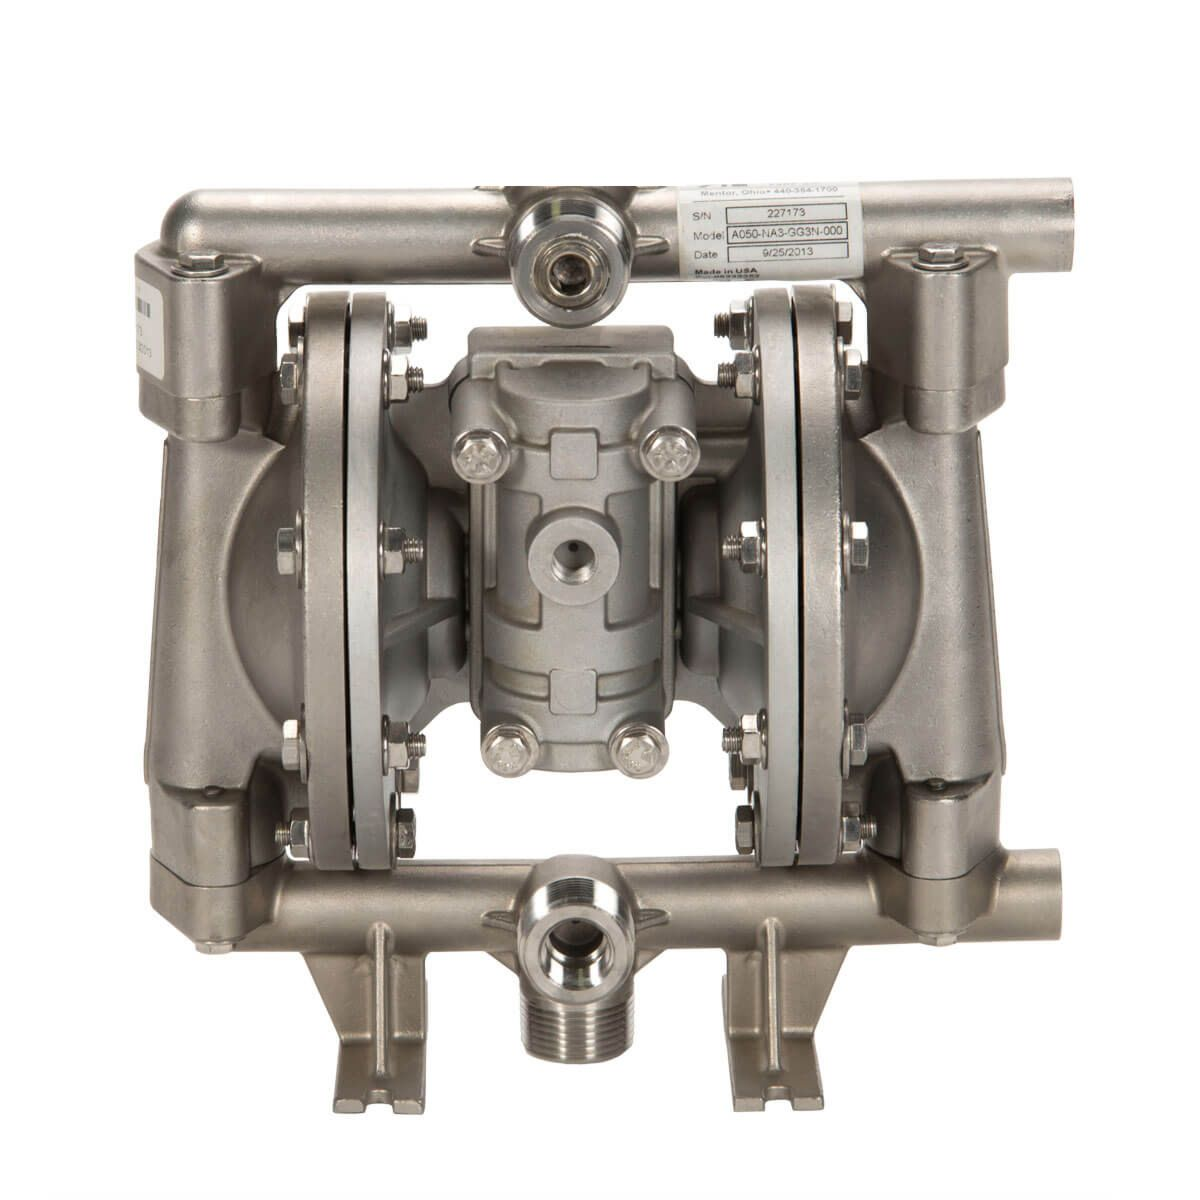 "All-Flo Stainless 1/2"" diaphragm pump A050-NA3-GT3N-S70"